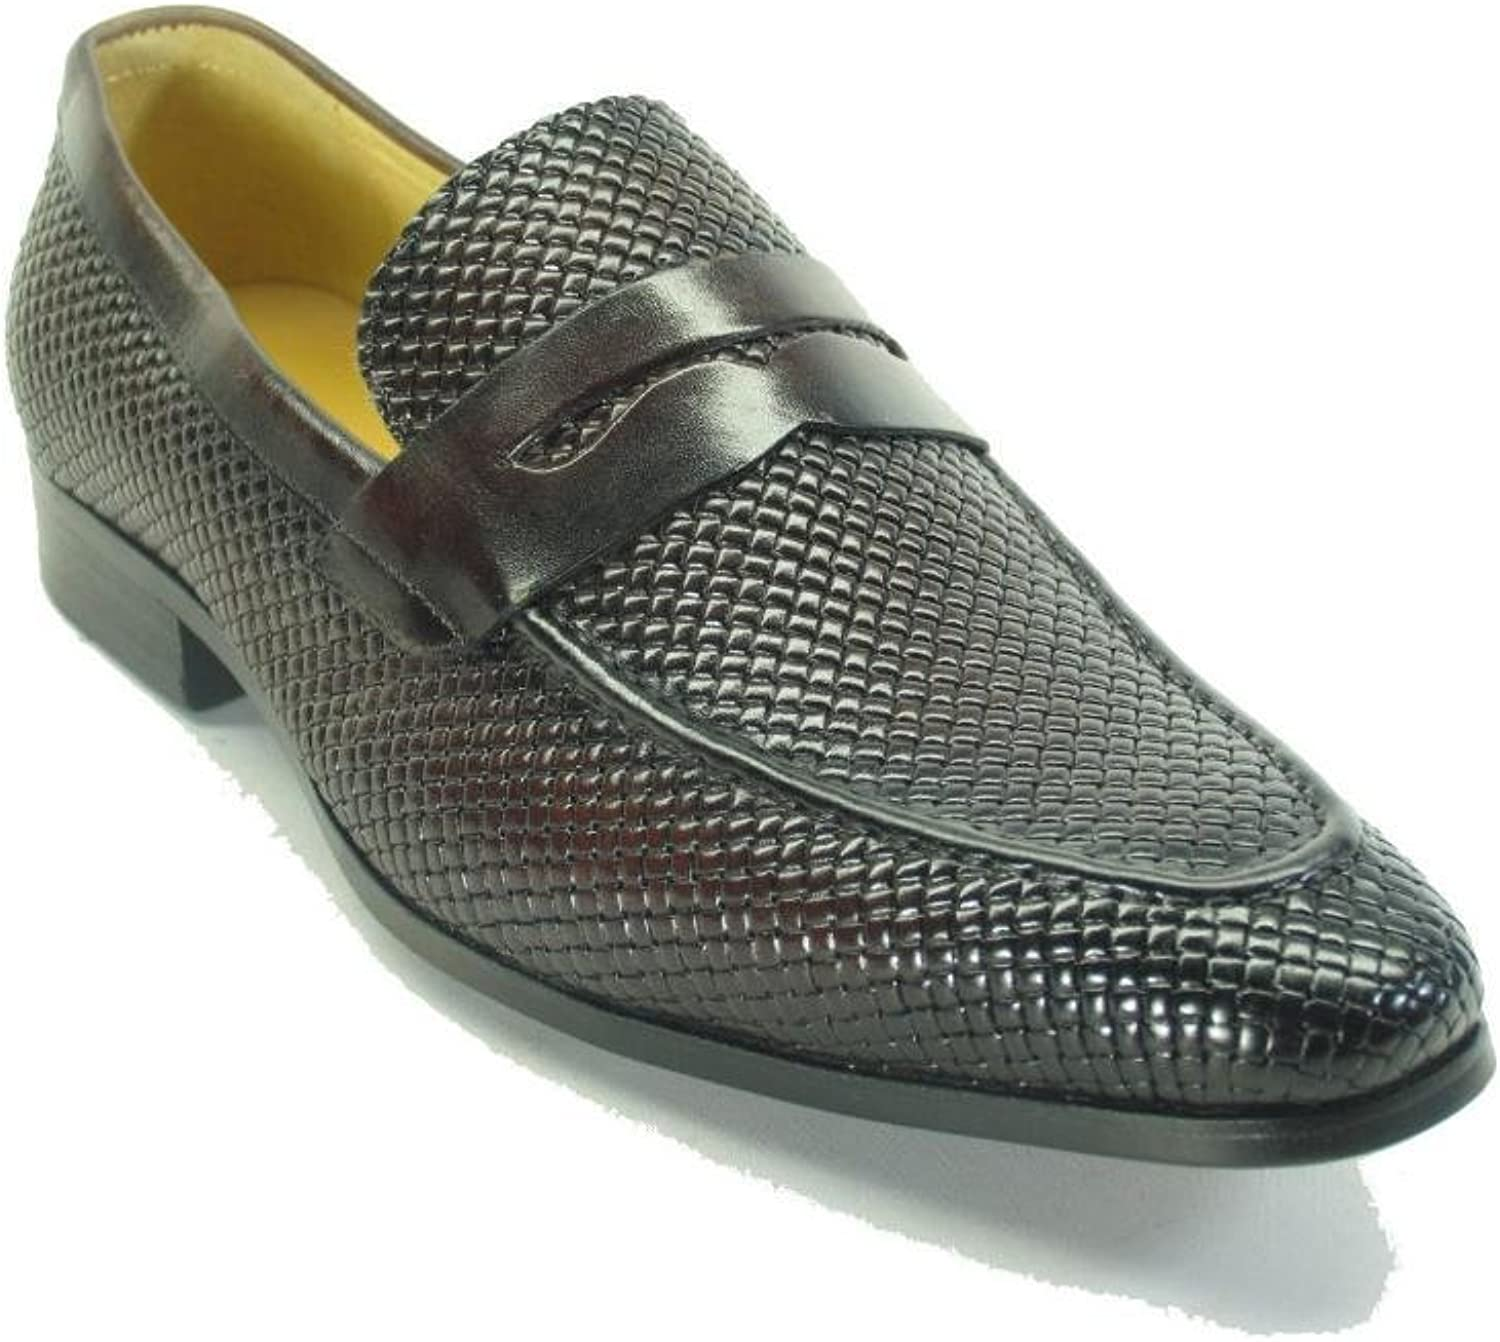 Carrucci Embossed Woven Penny Loafer KS478-110E